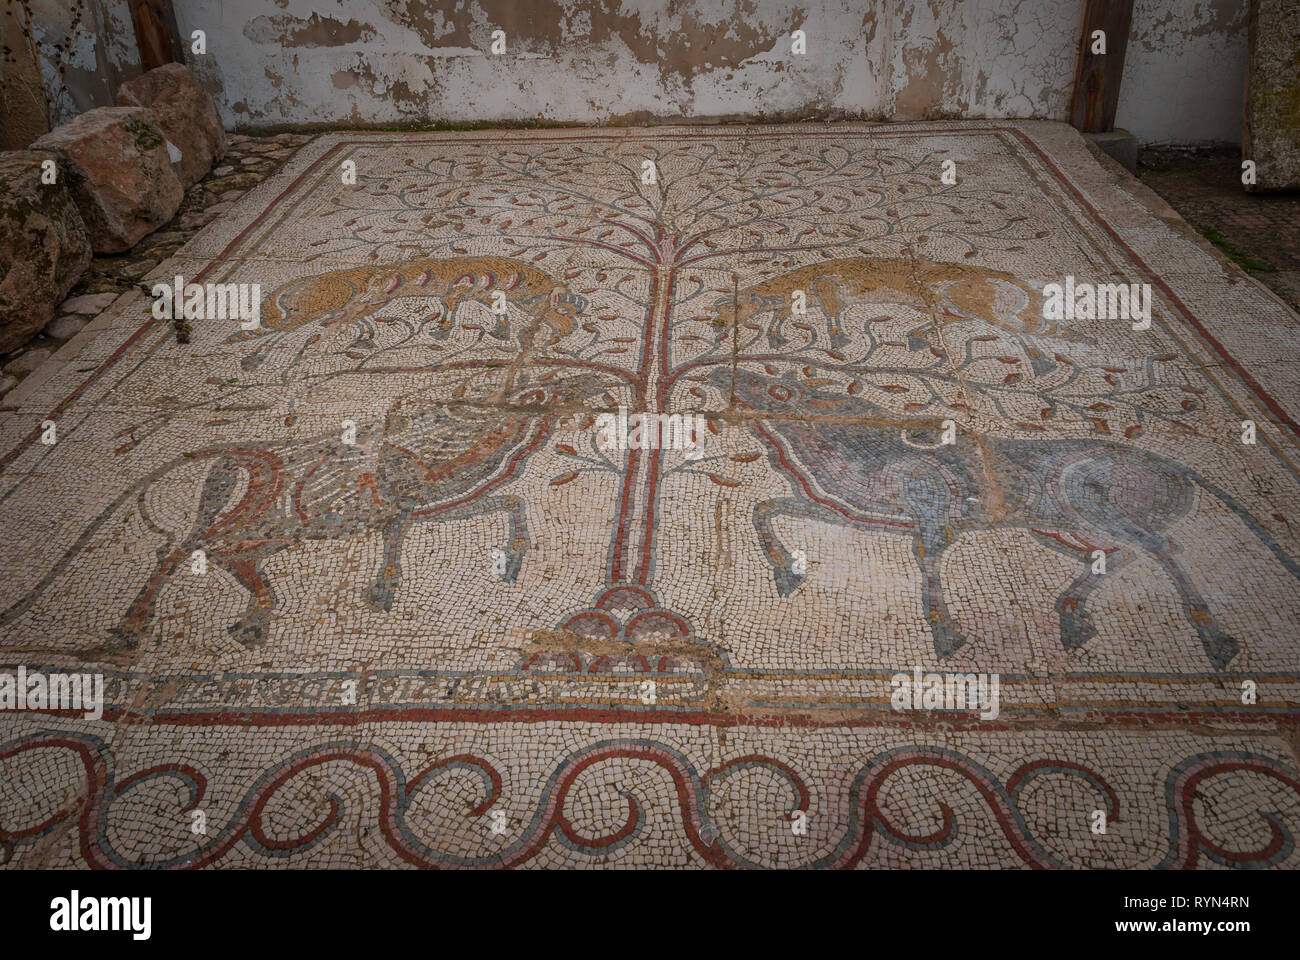 Roman Mosaic in Madaba archeological museum, Gazelle and oxes, Jordan, Middle East Stock Photo